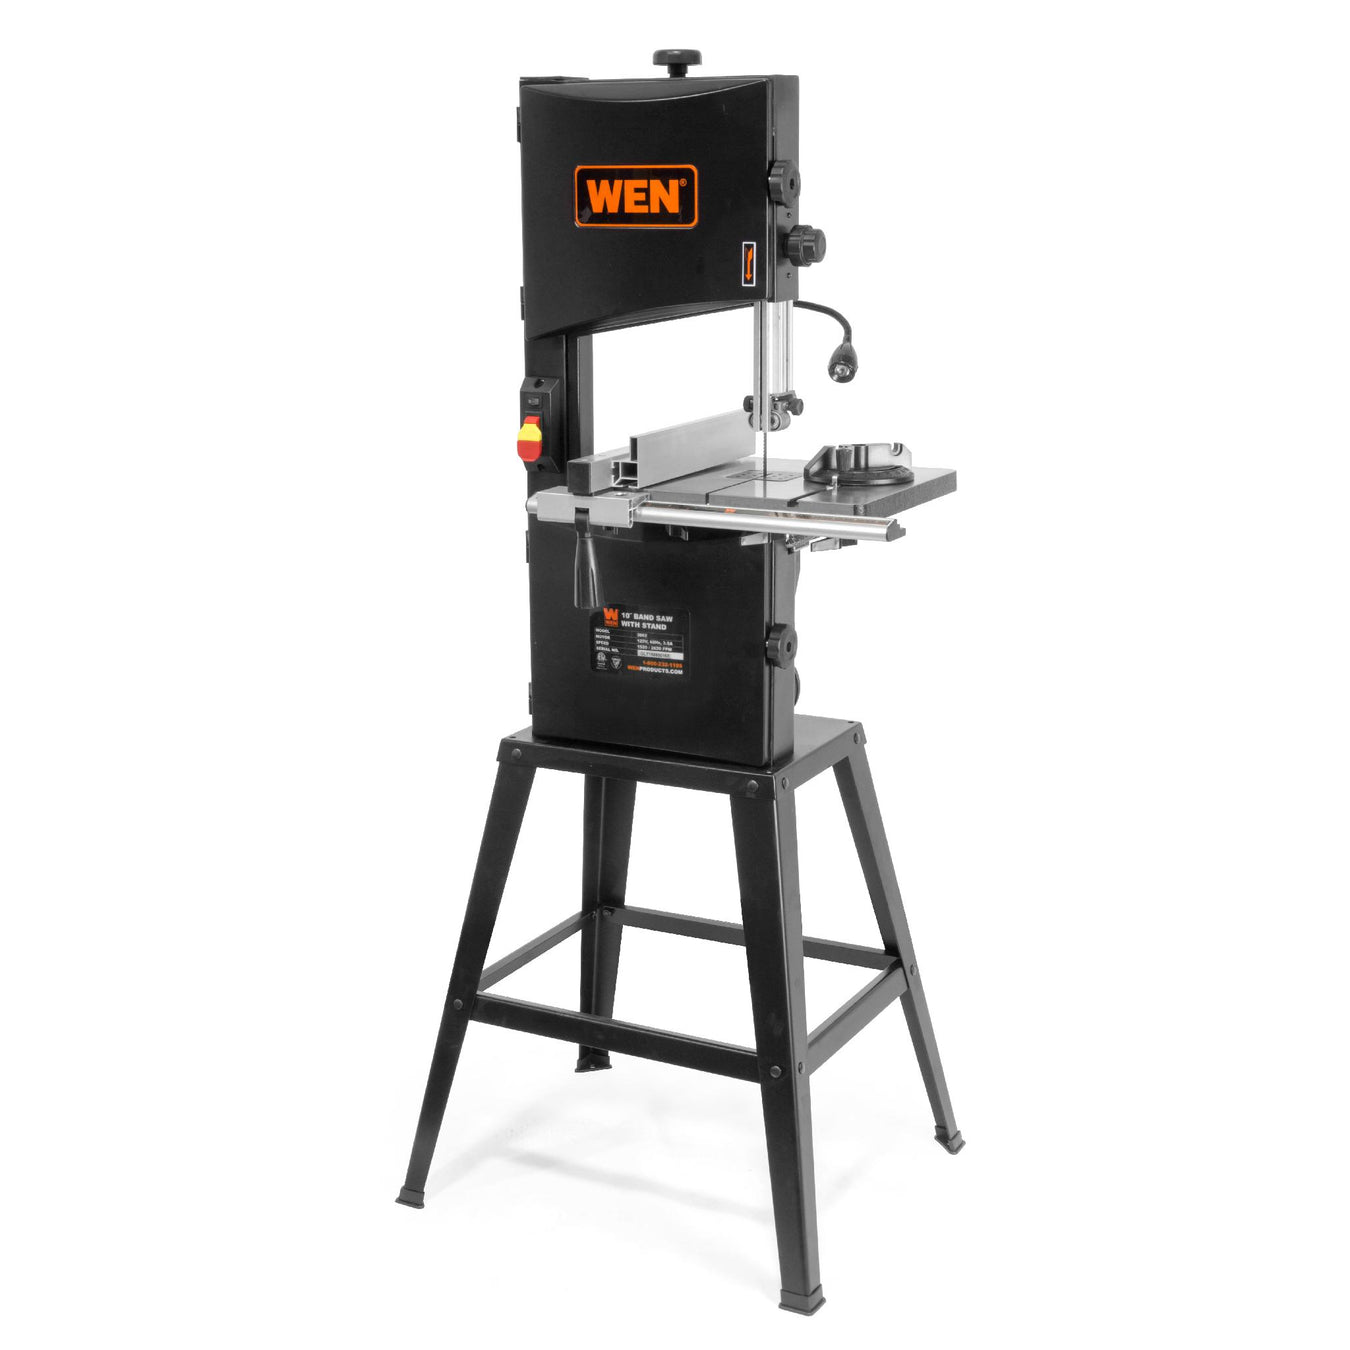 Woodworking and Metalworking Bandsaws